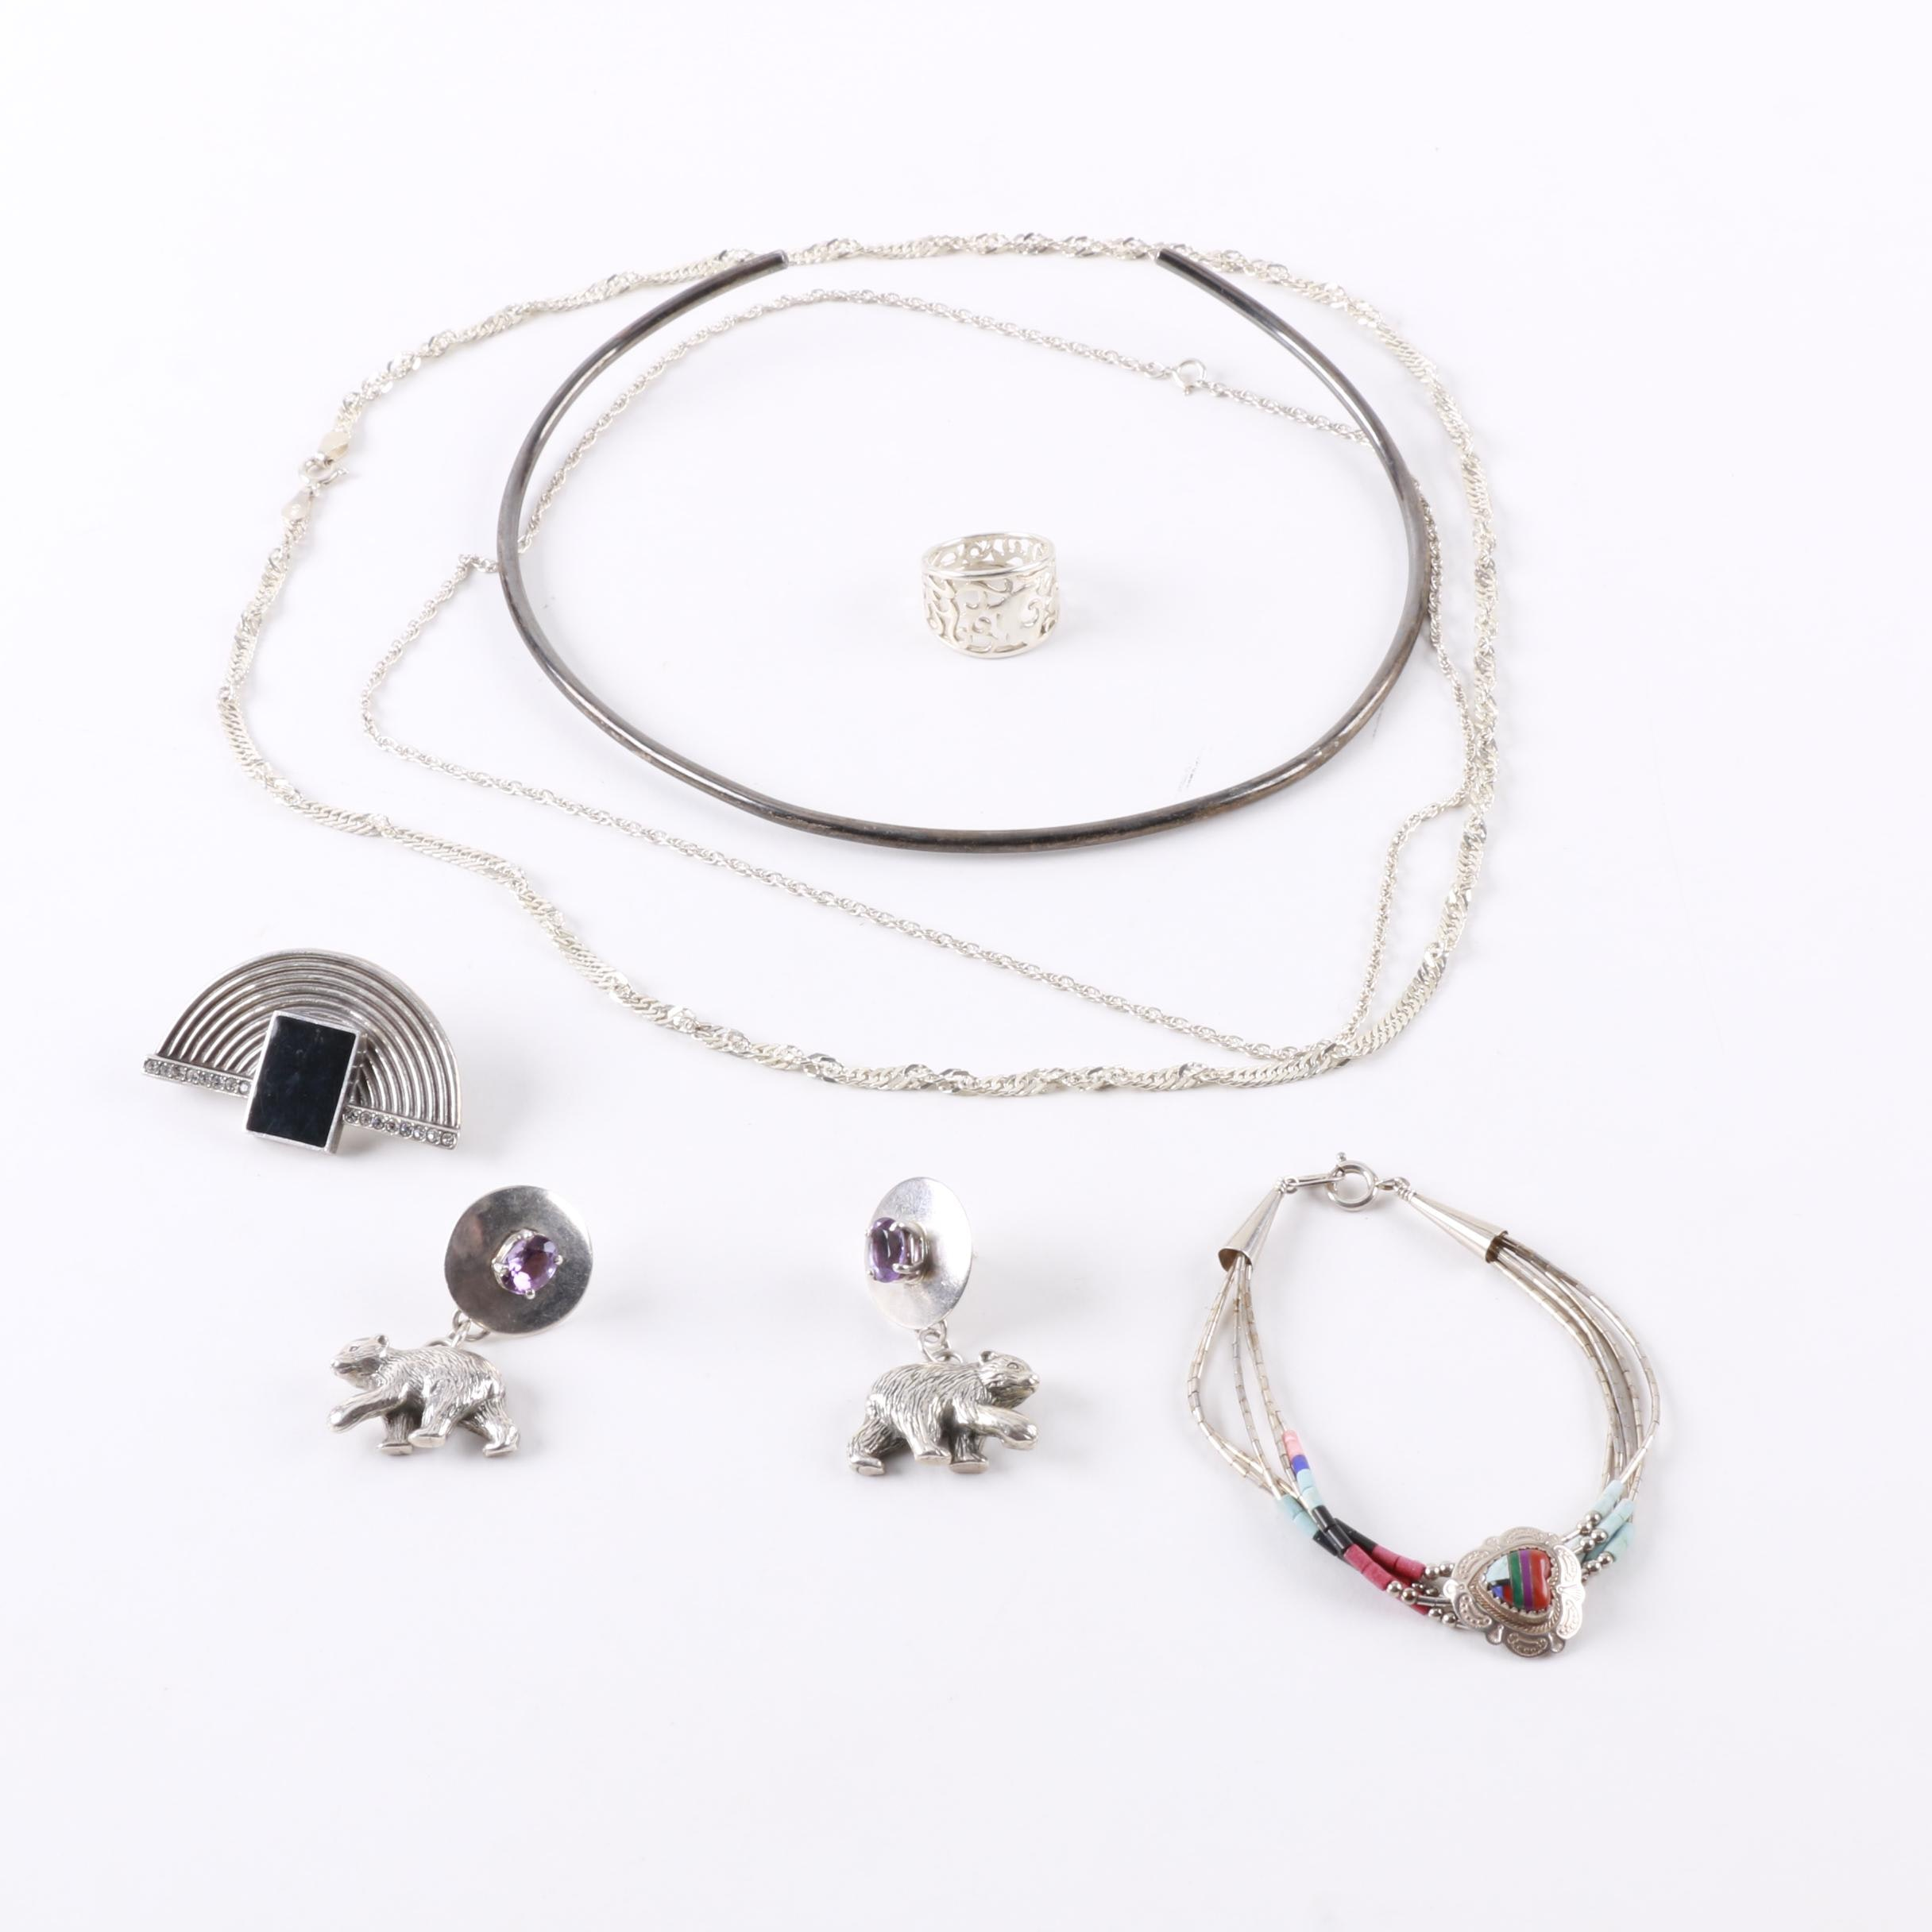 Selection of Sterling Silver Jewelry Including Southwest Style Pieces